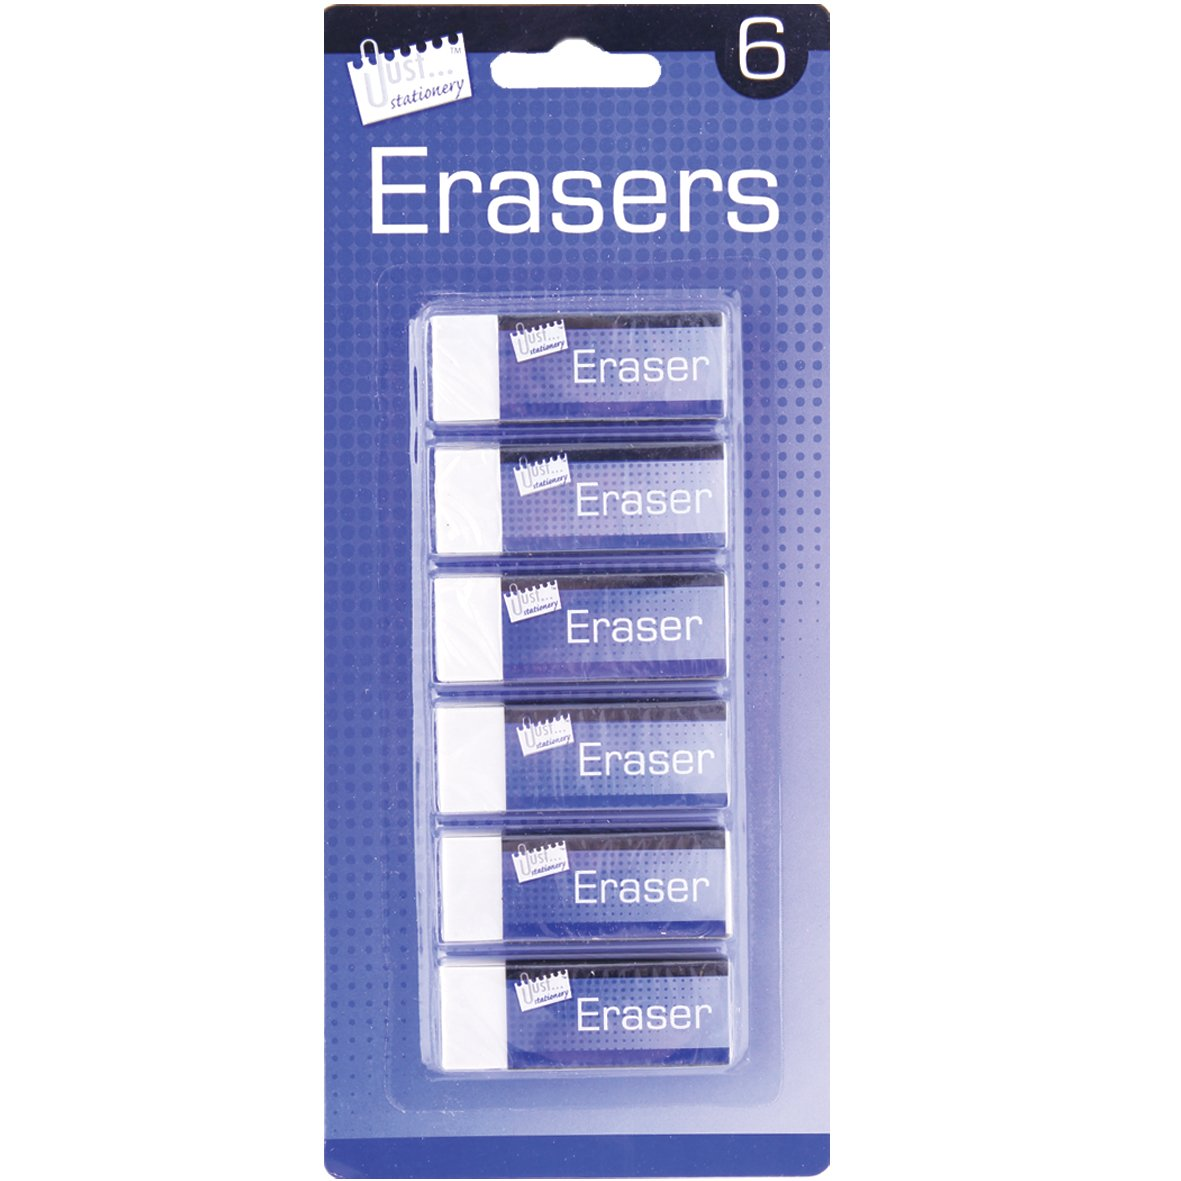 Just Stationery Eraser White Pack of 6